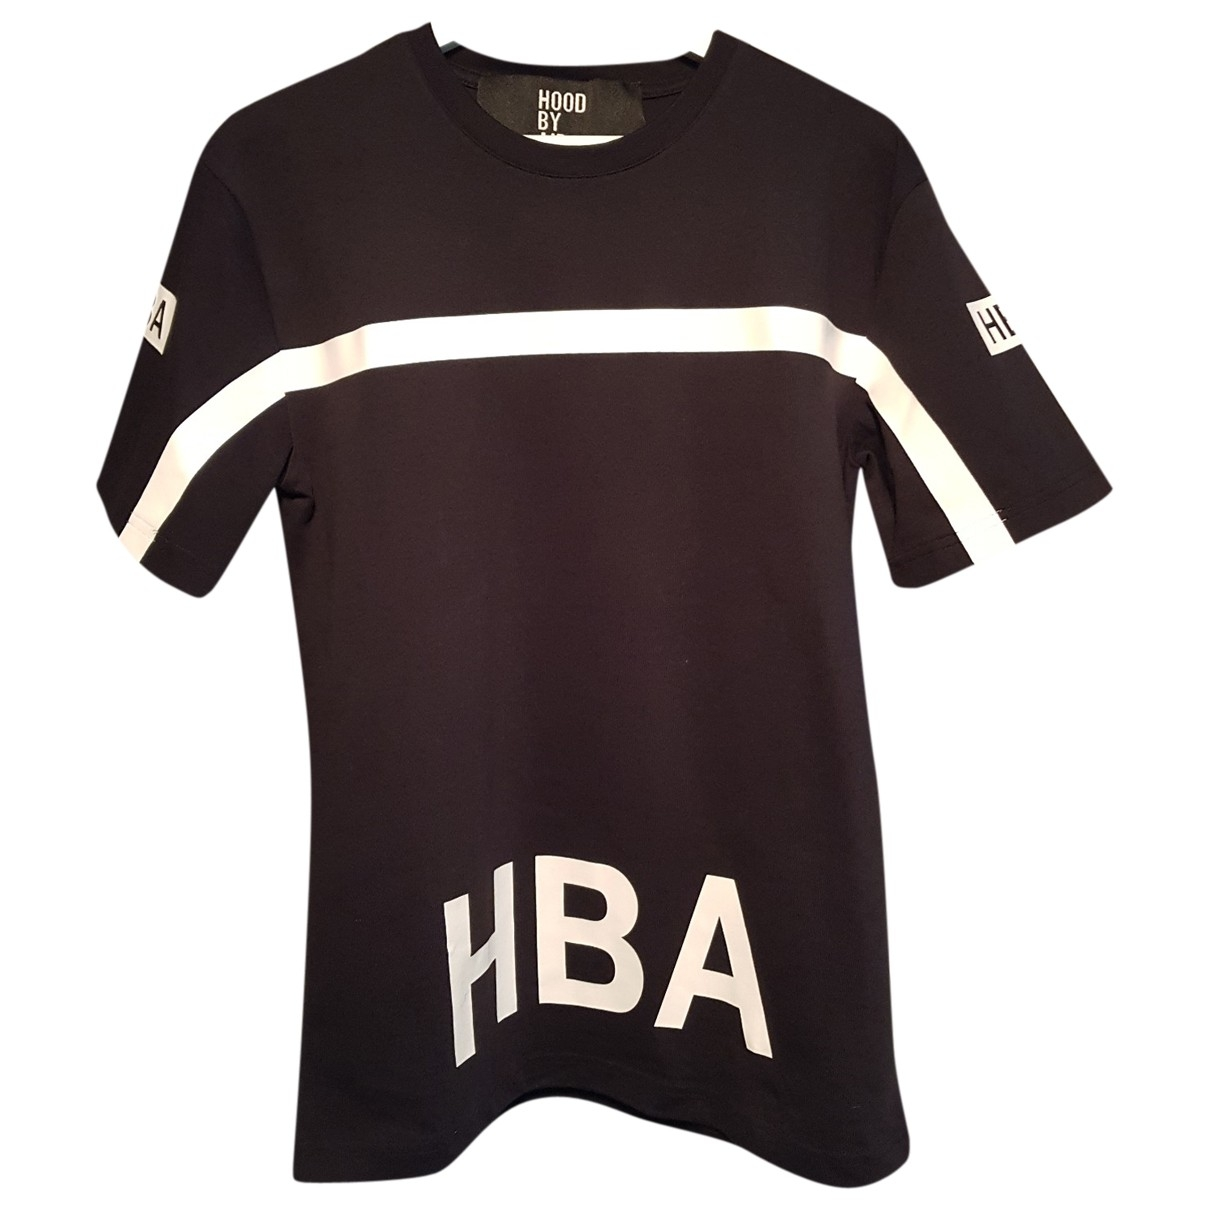 Camiseta Hood By Air